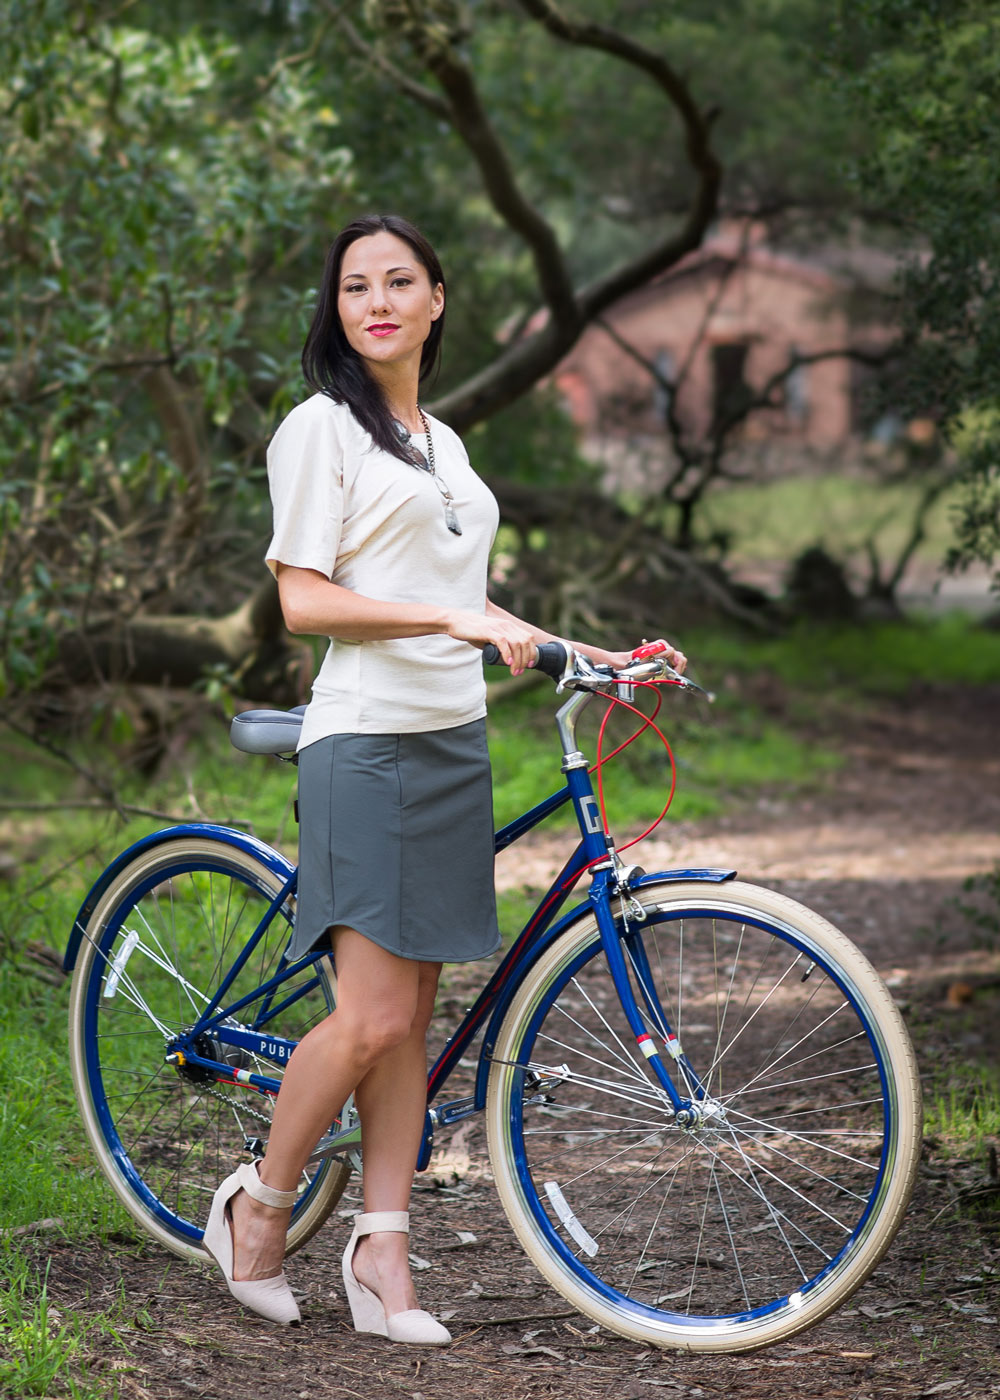 iladora-skirt-for-riding-a-bike